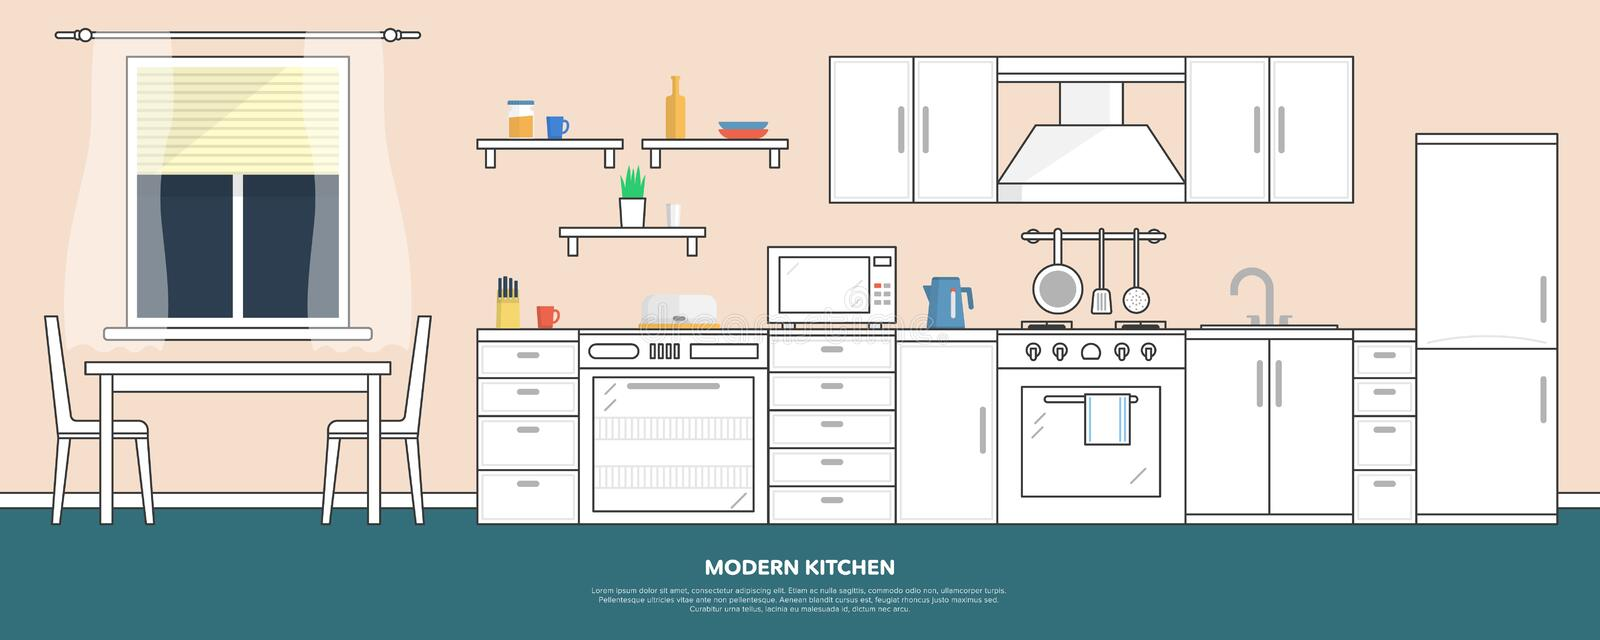 Kitchen with furniture. Kitchen interior with table, stove, cupboard, dishes and fridge. Flat style vector illustration.  royalty free illustration